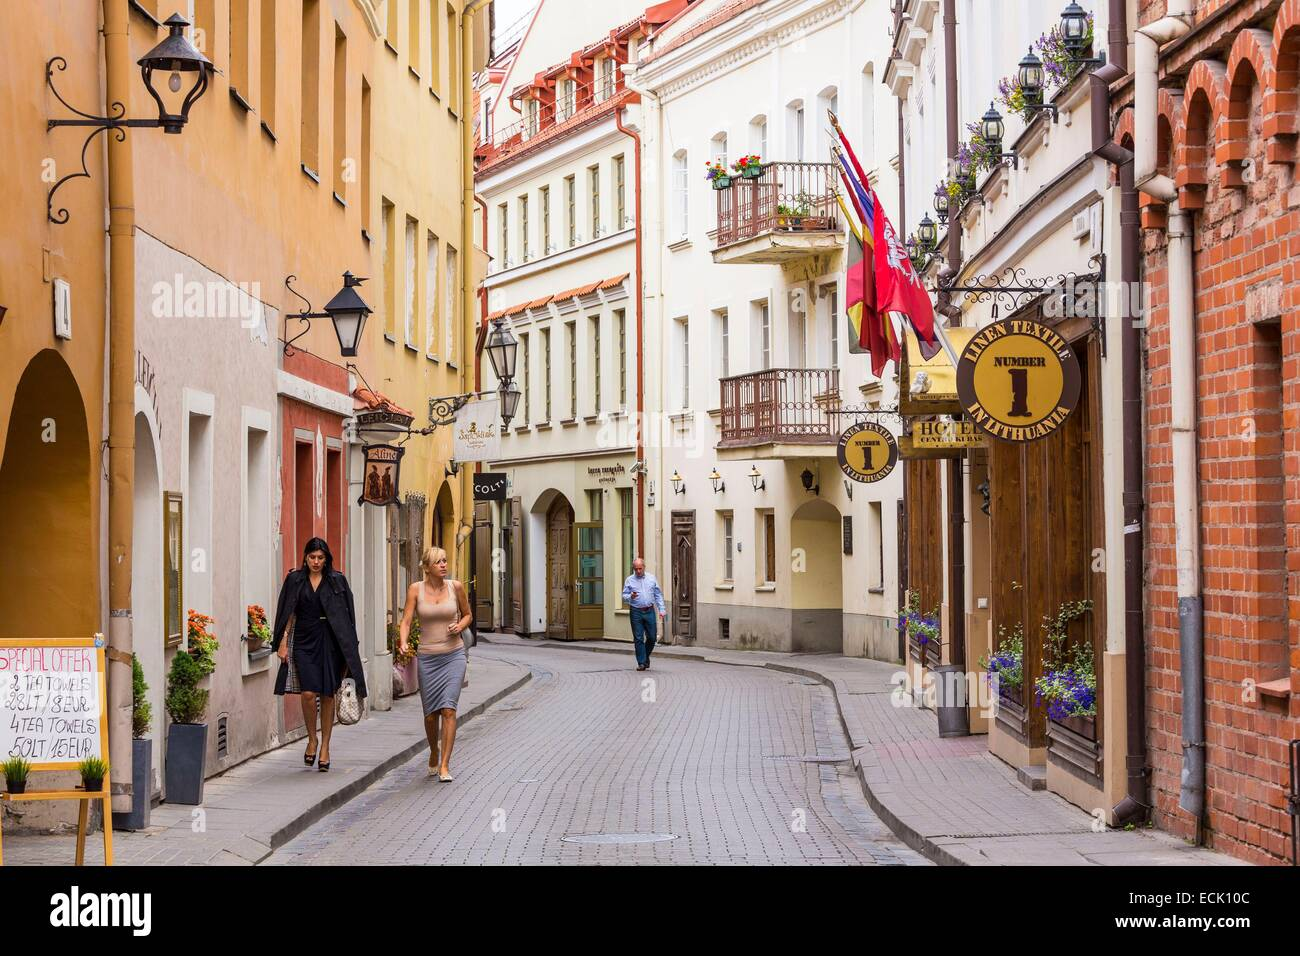 Lithuania (Baltic States), Vilnius, historical center listed as World Heritage by UNESCO, street Stikliu in the - Stock Image